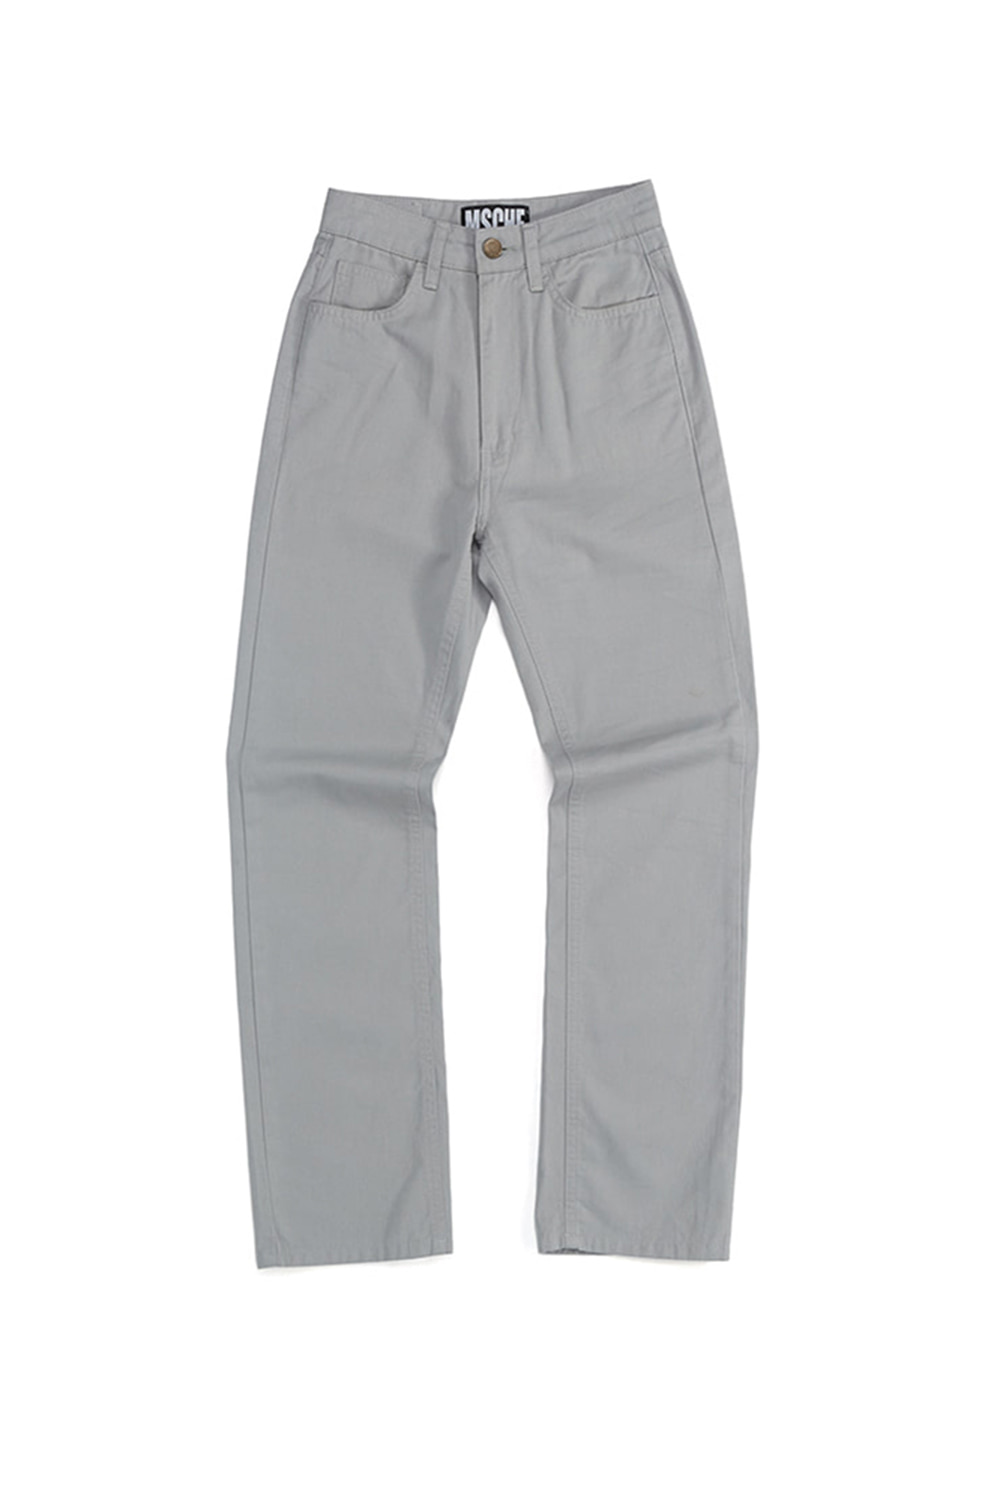 CHINO PANTS_gray